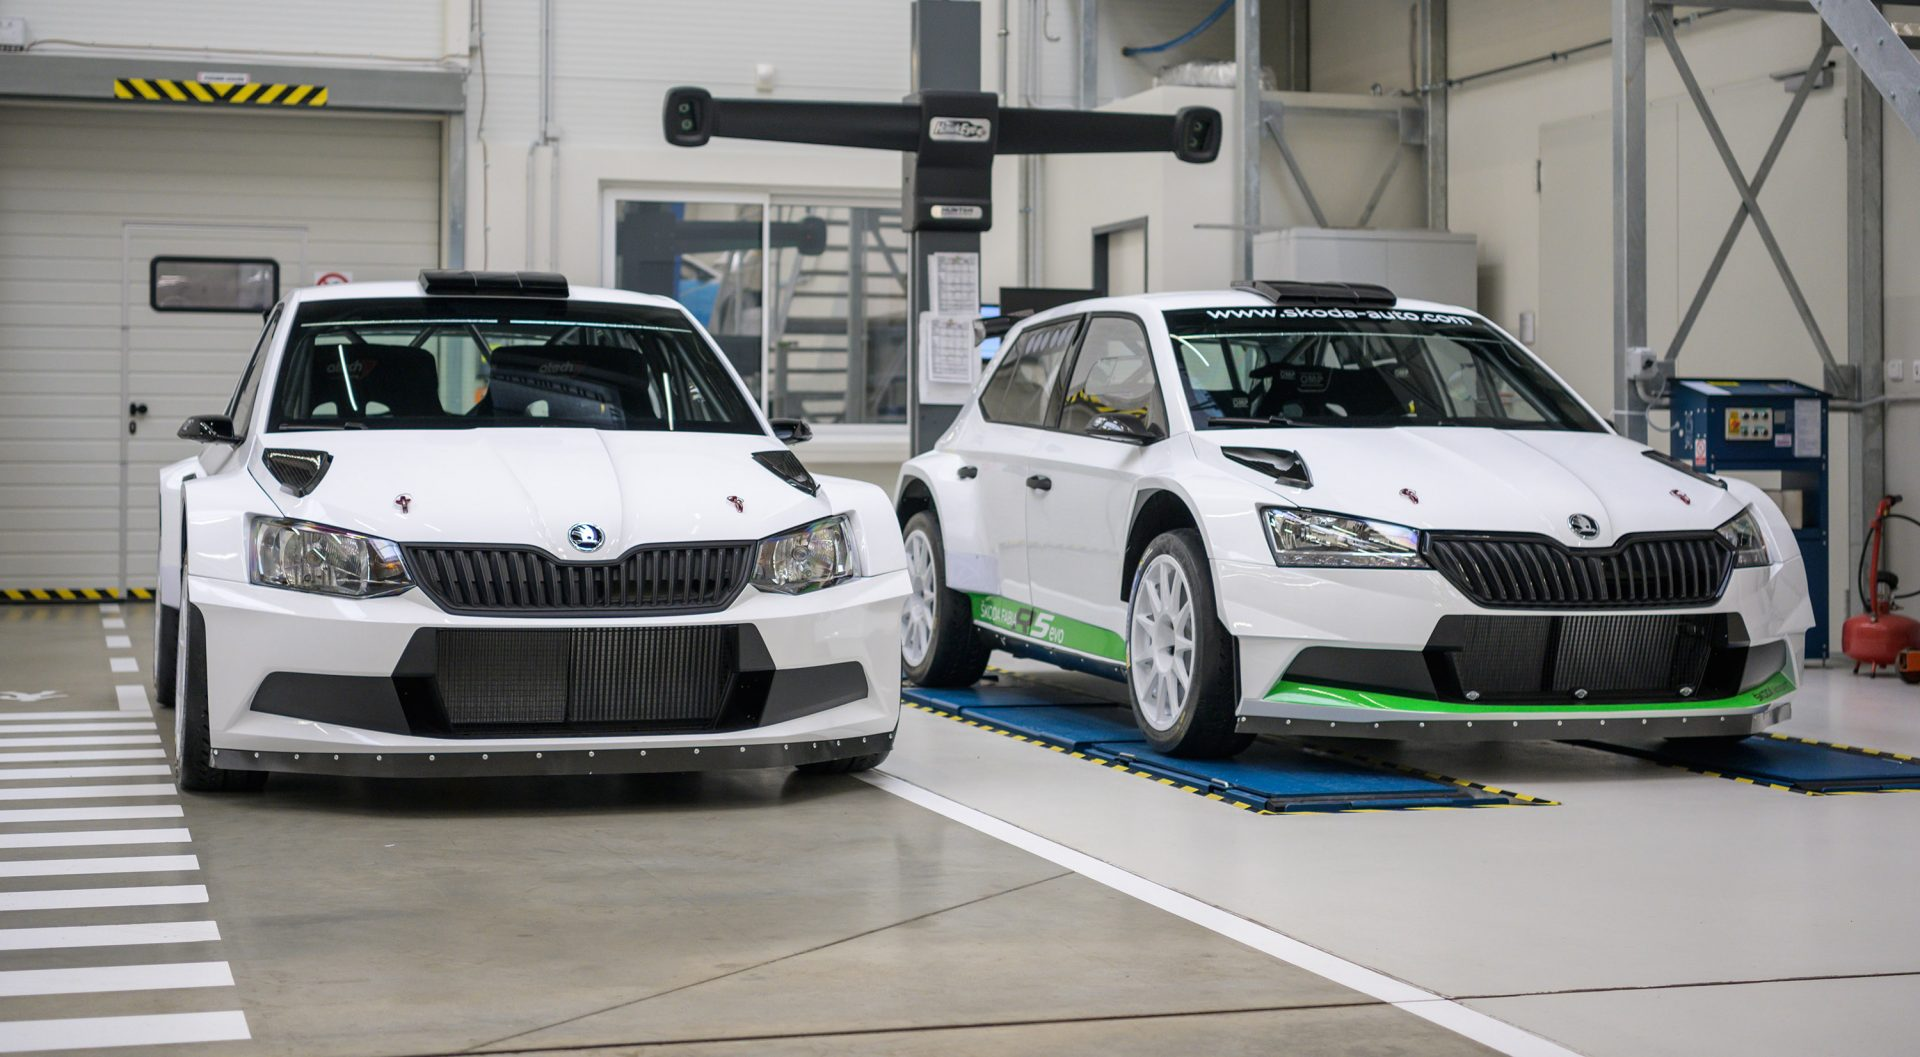 A Rallying Bestseller: ŠKODA FABIA R5 Reaches 300 Sales